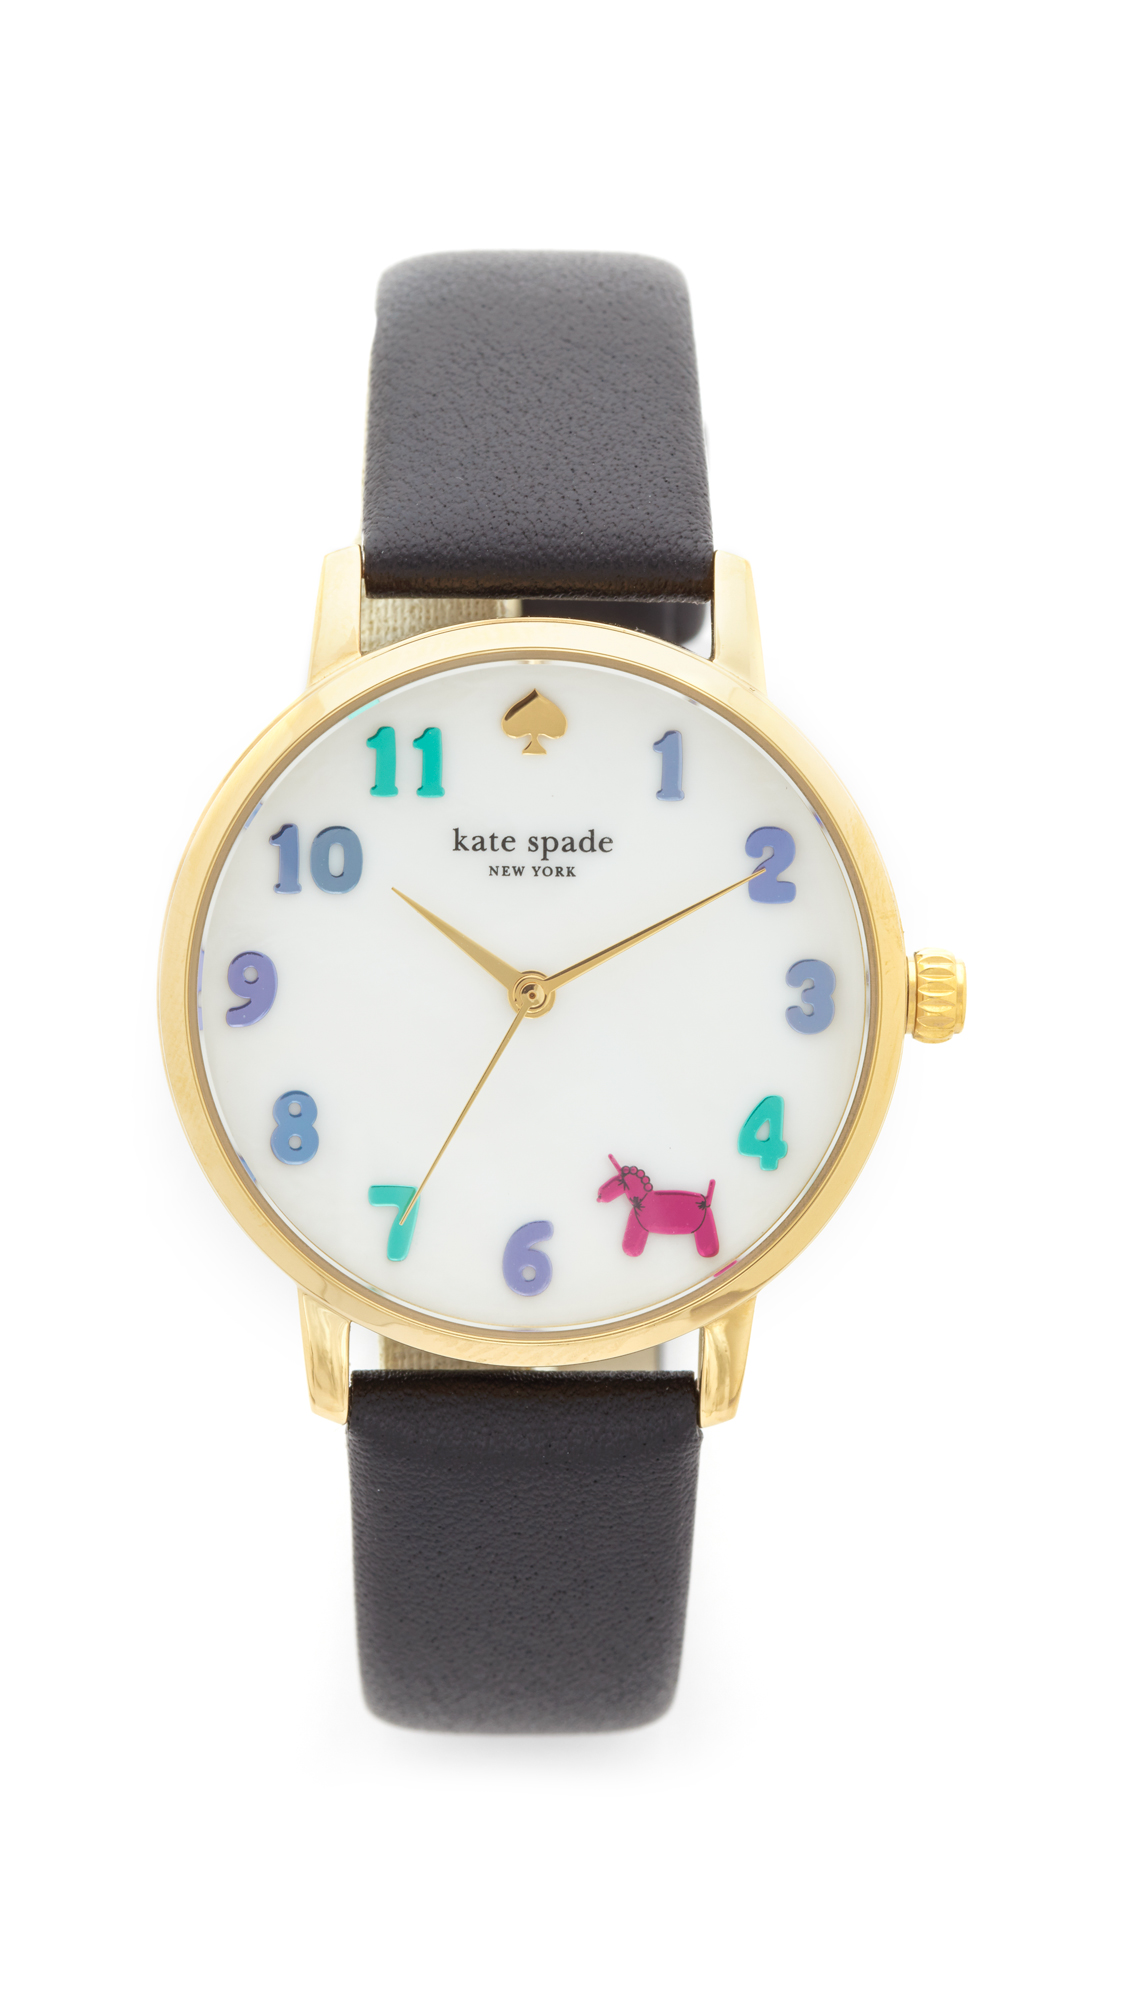 Kate Spade New York Novelty Watch - Gold Multi at Shopbop